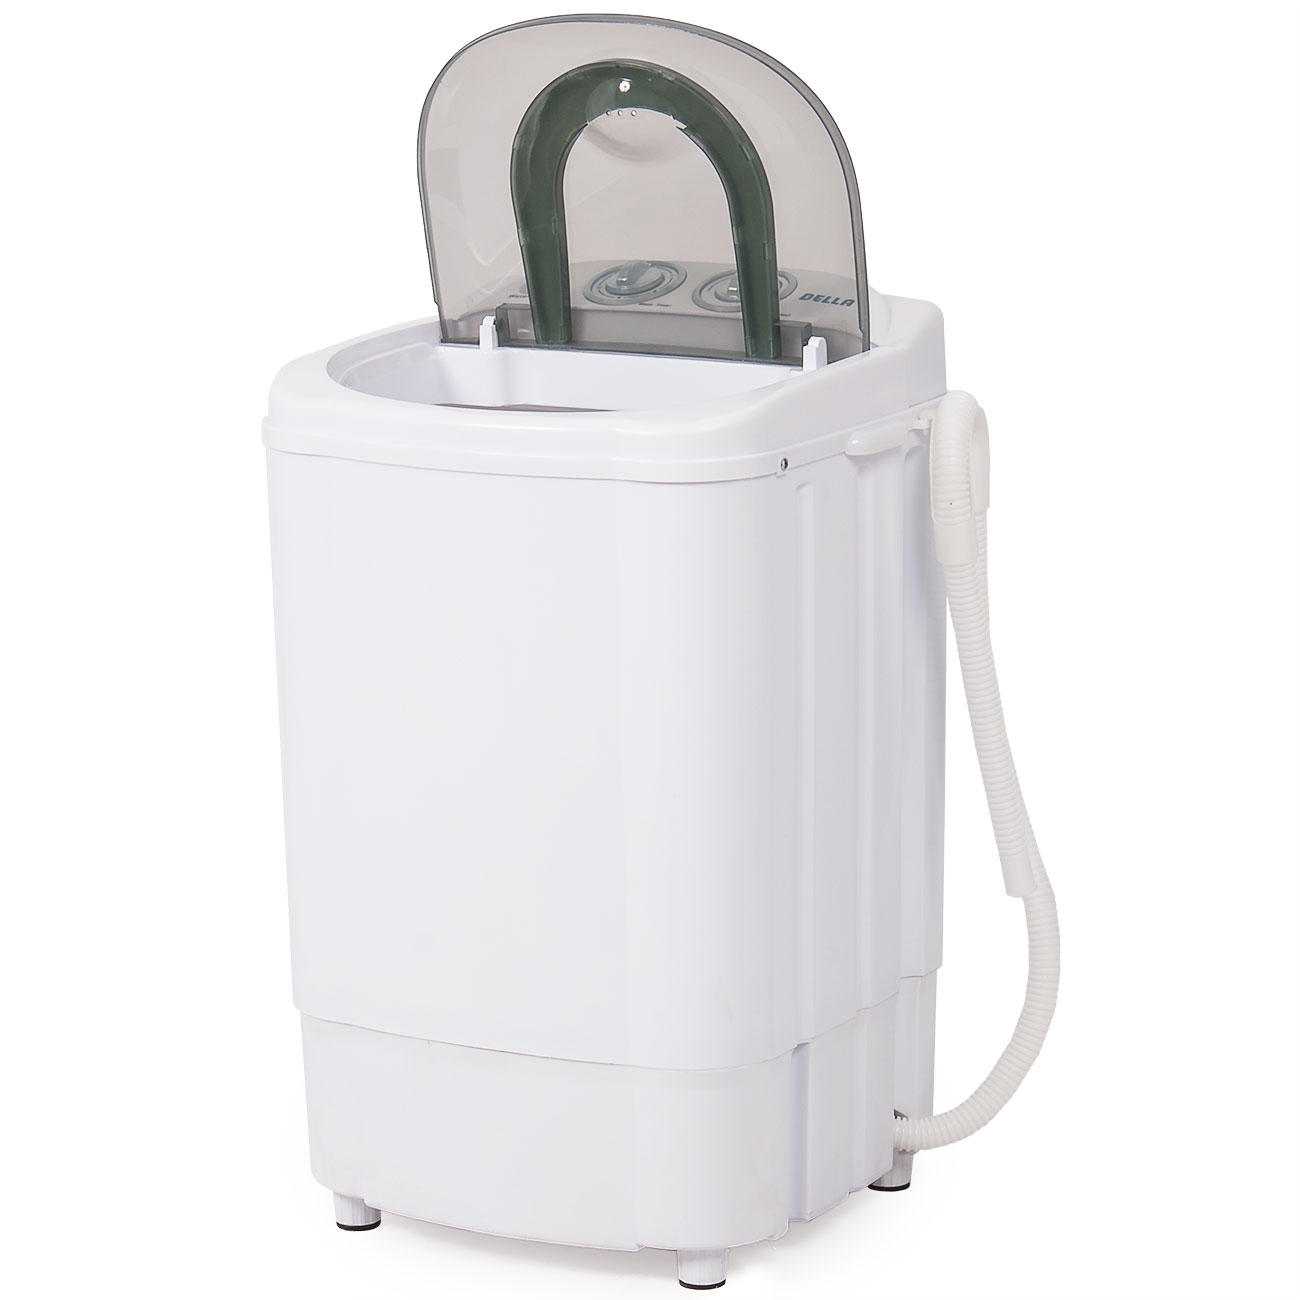 electric small mini portable compact washer washing machine 4kg washer white ebay. Black Bedroom Furniture Sets. Home Design Ideas